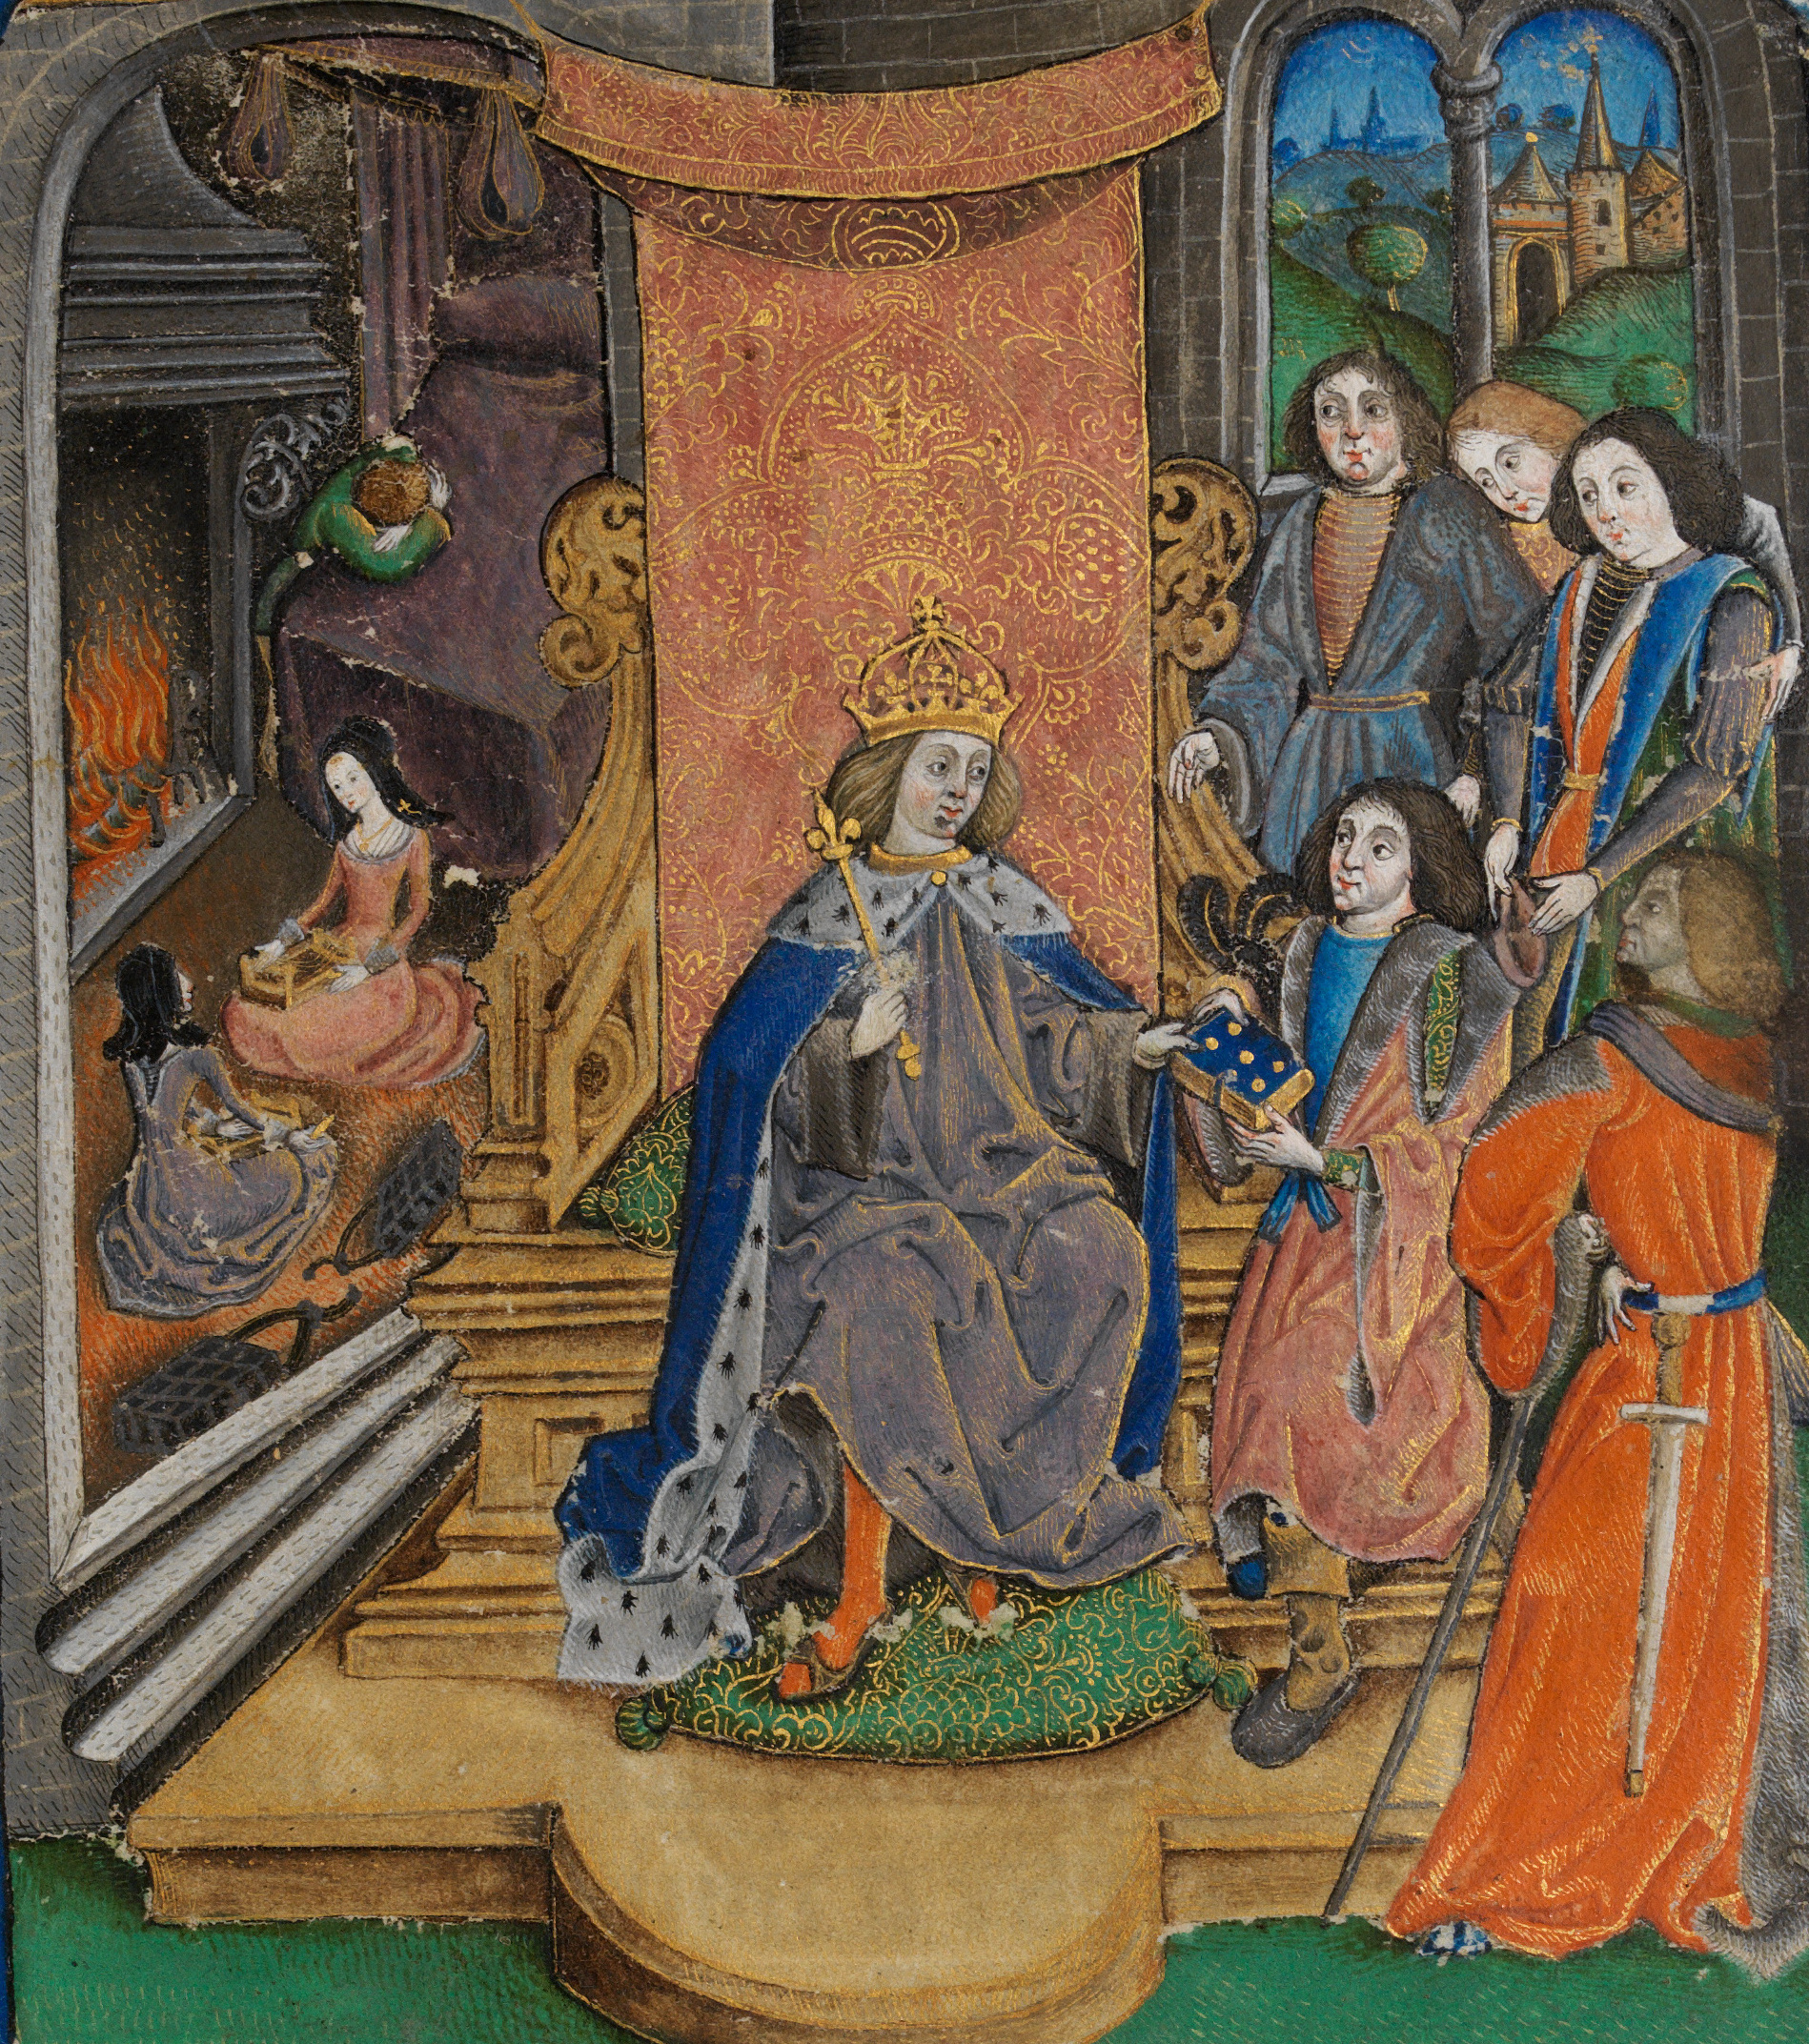 Presenting-the-Vaux-Pasional-manuscript-to-henry-VII-his-son-Henry-VIII-weeps-in-the-bachground-f.9